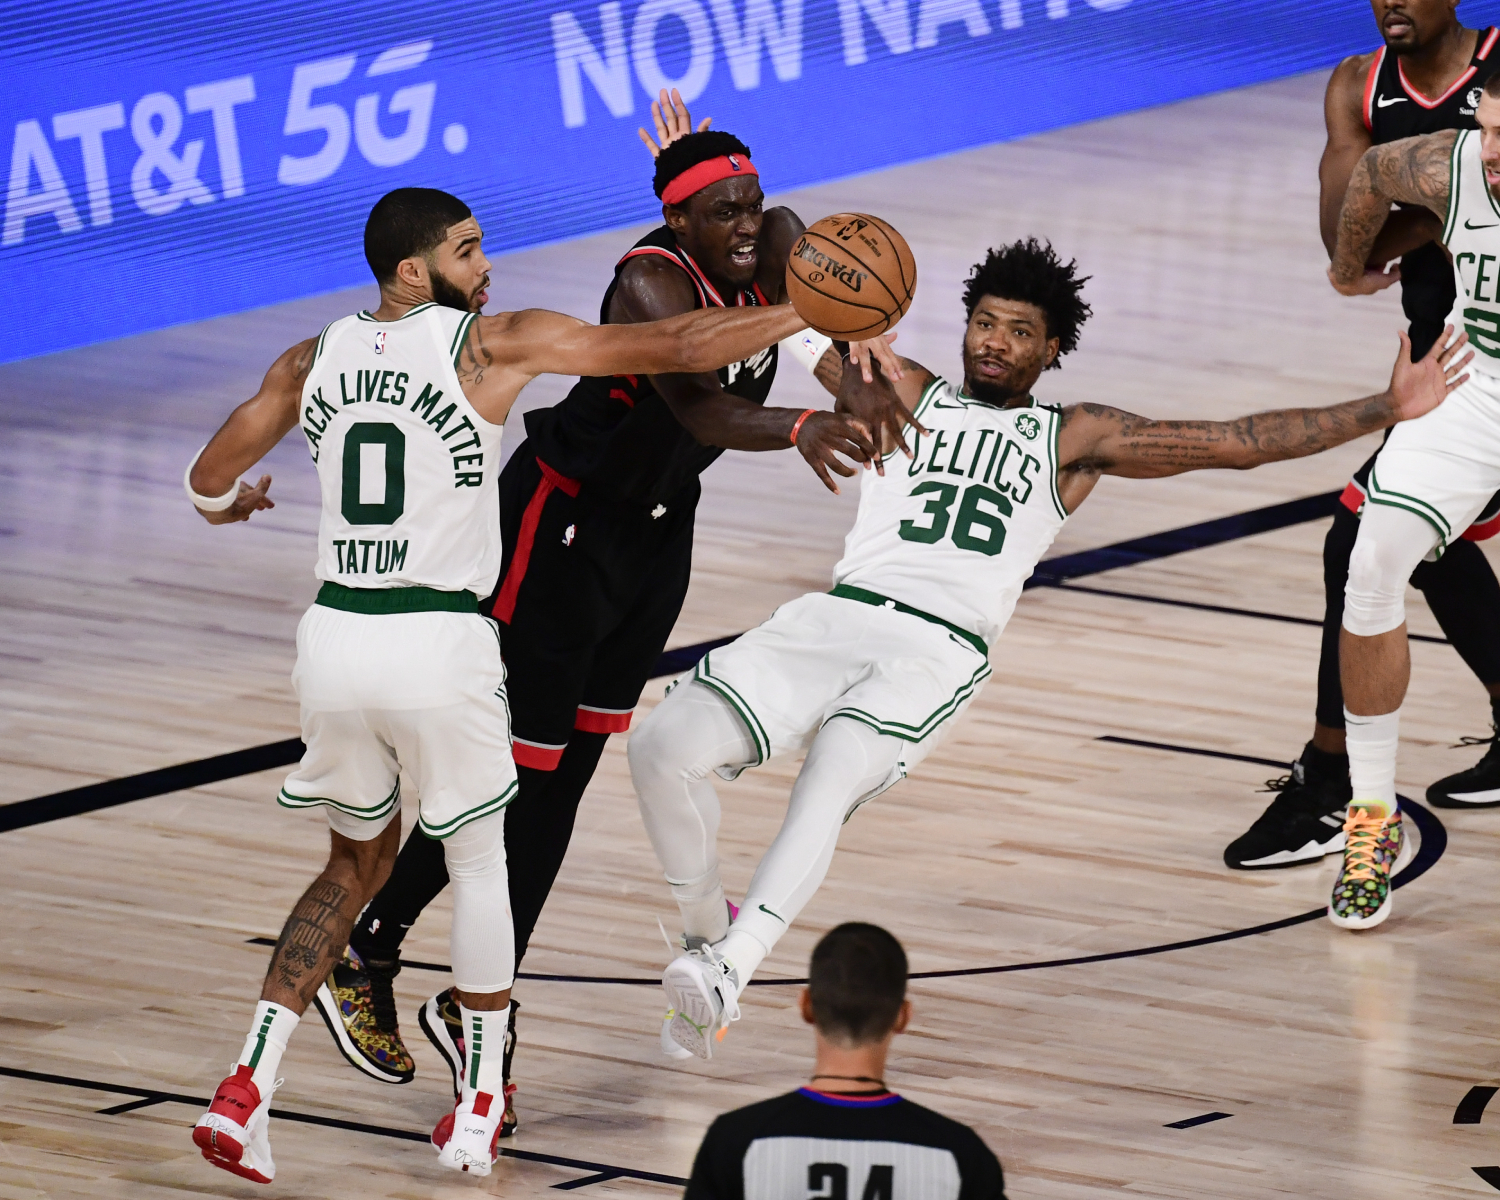 Pot, Meet Kettle: Marcus Smart Is Upset About Flopping In the NBA